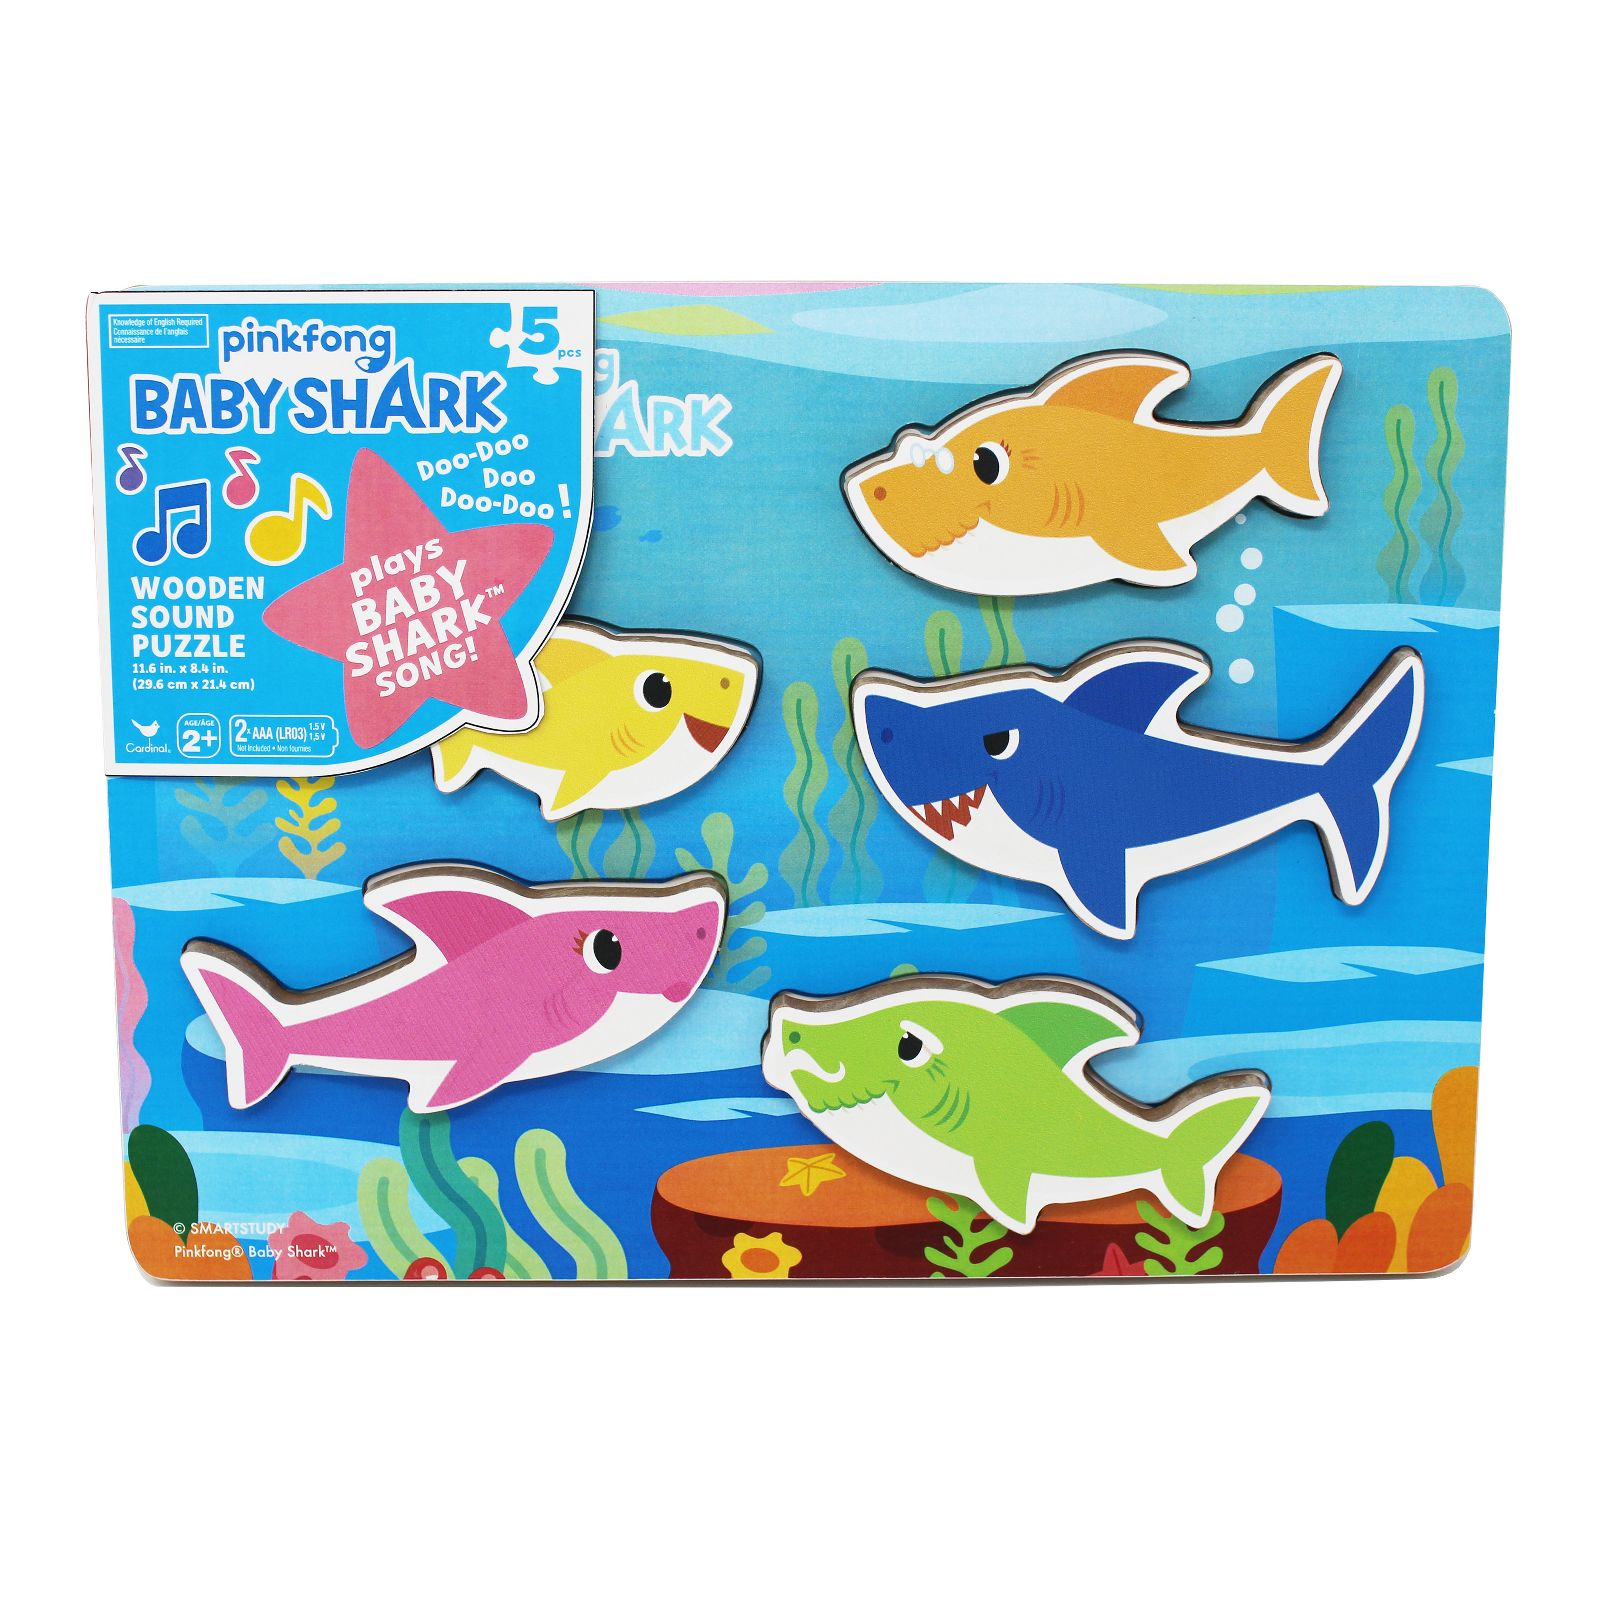 Image of Cardinal Games Pinkfong Baby Shark Chunky Wood Sound Puzzle - Plays Baby Shark Song